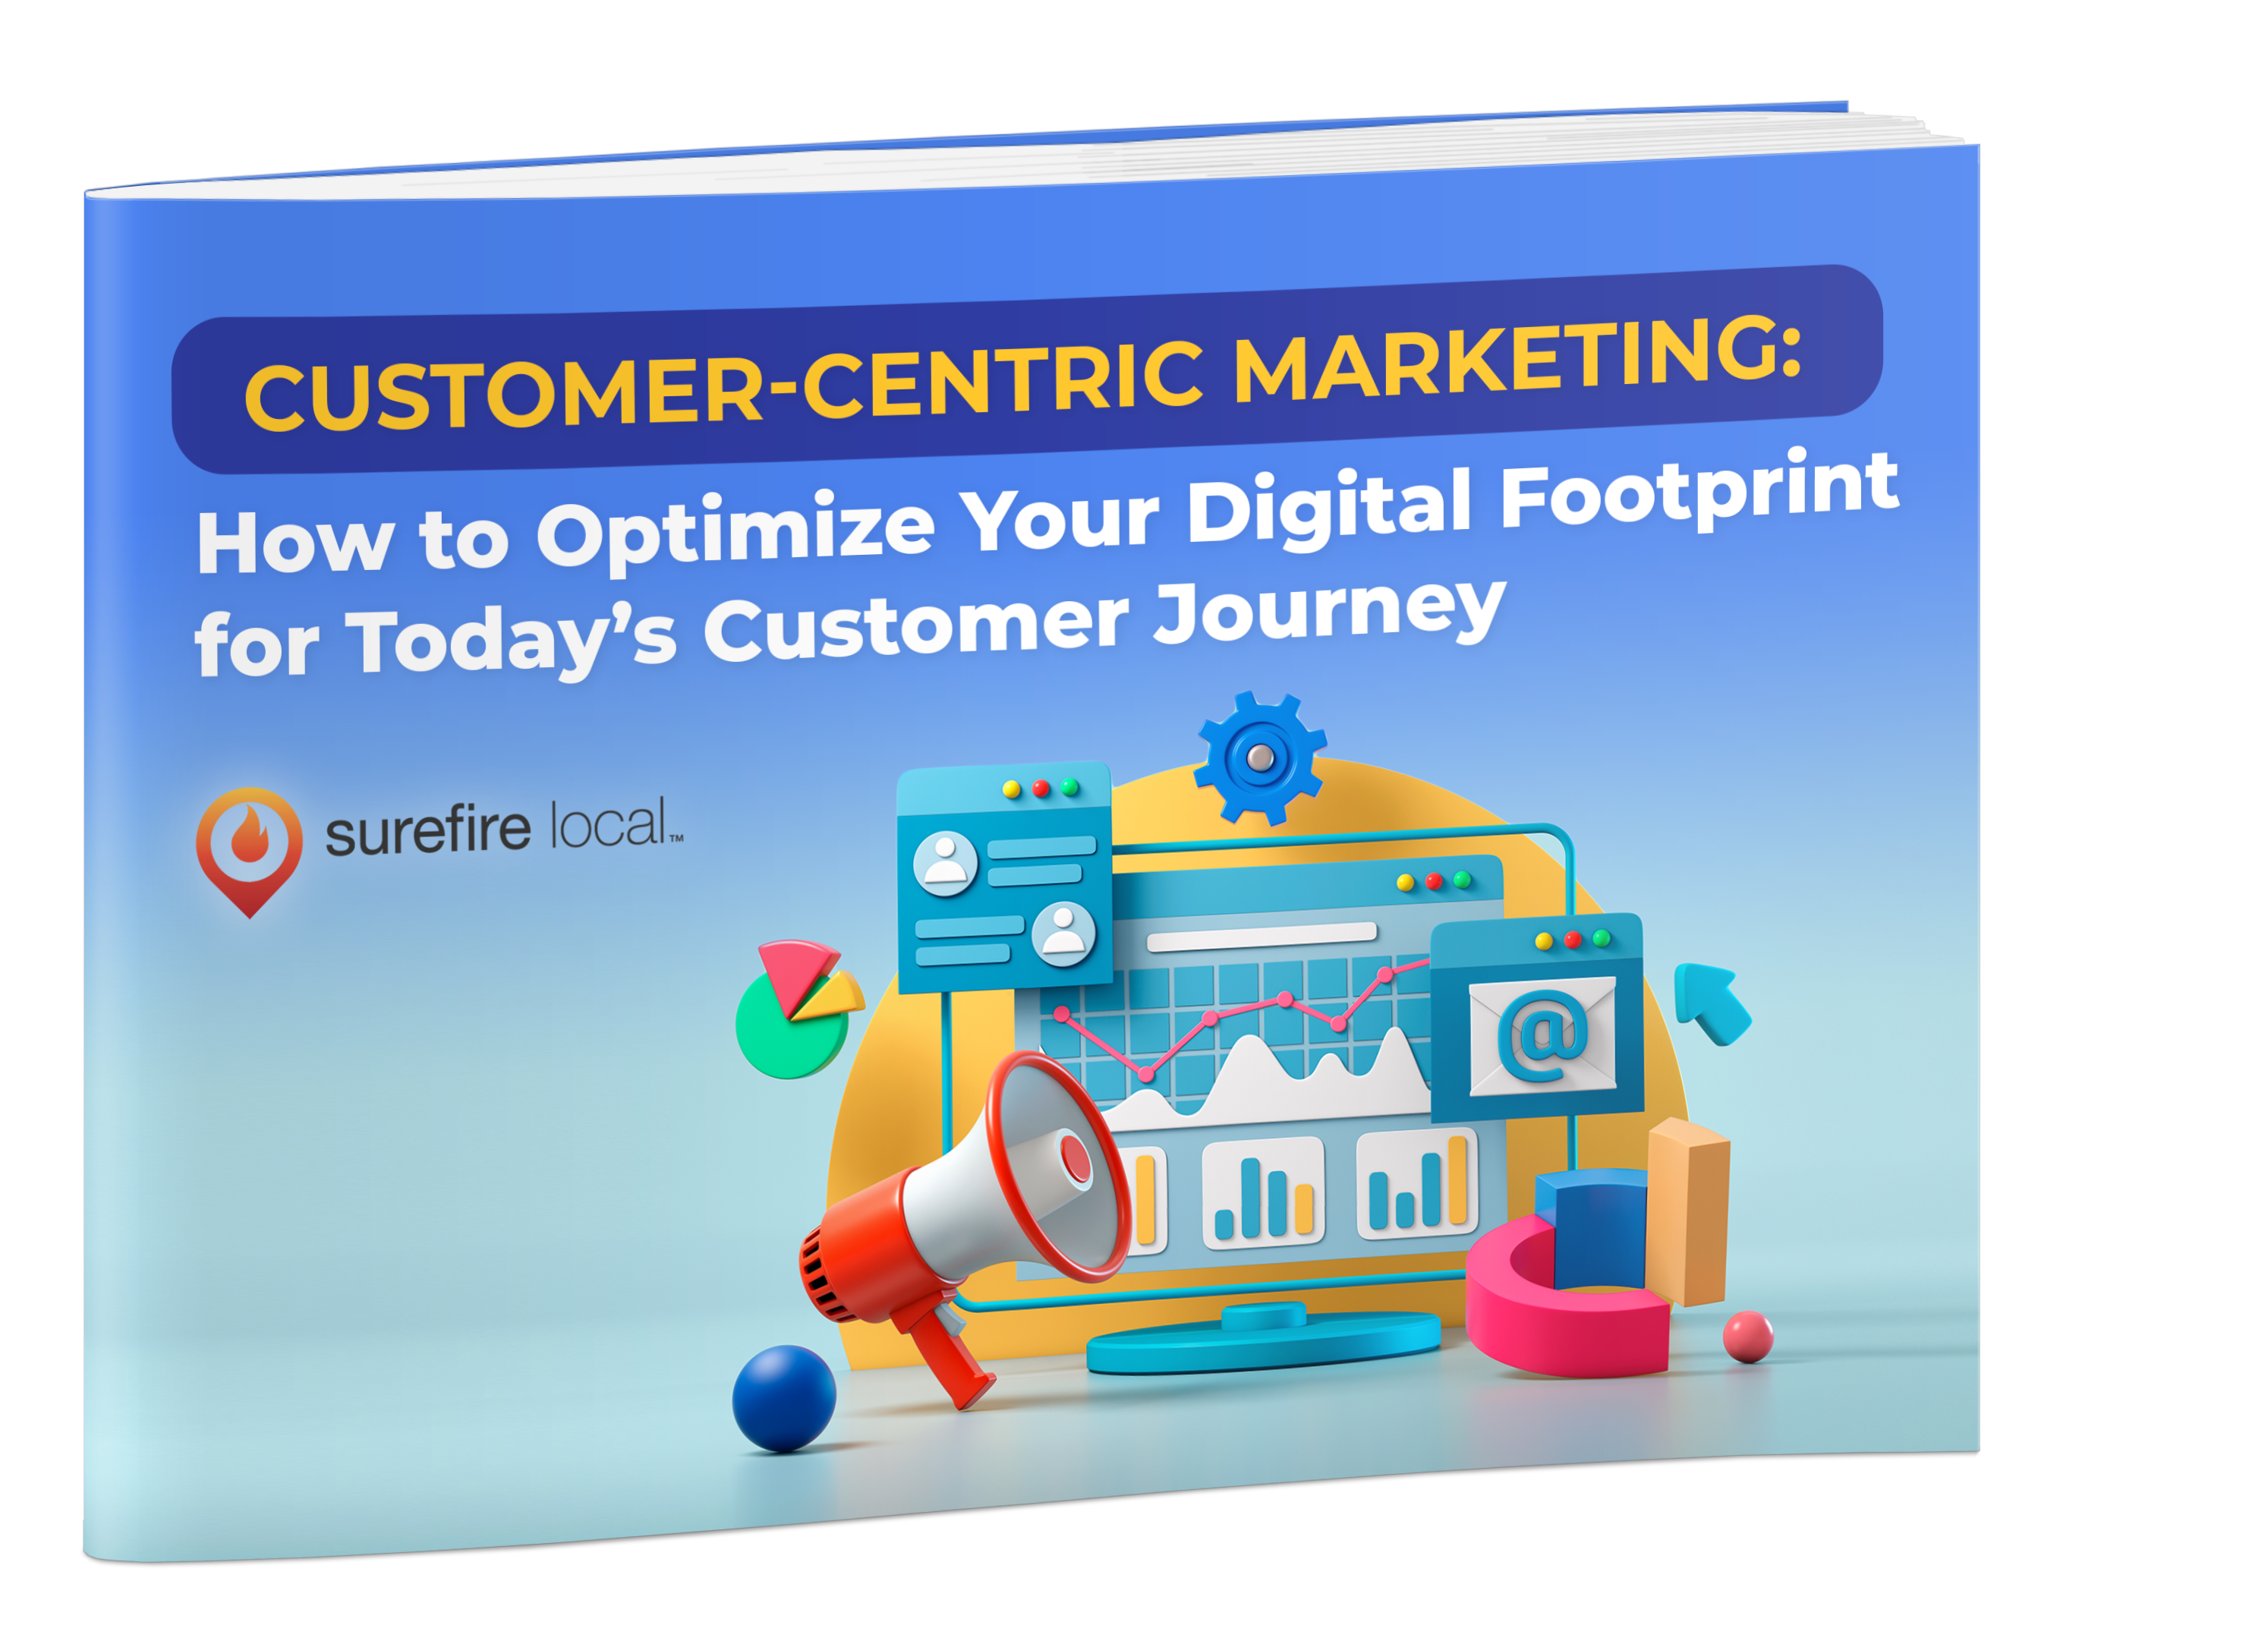 Customer-Centric Marketing - How to Optimize Your Digital Footpring for Today's Customer Journey